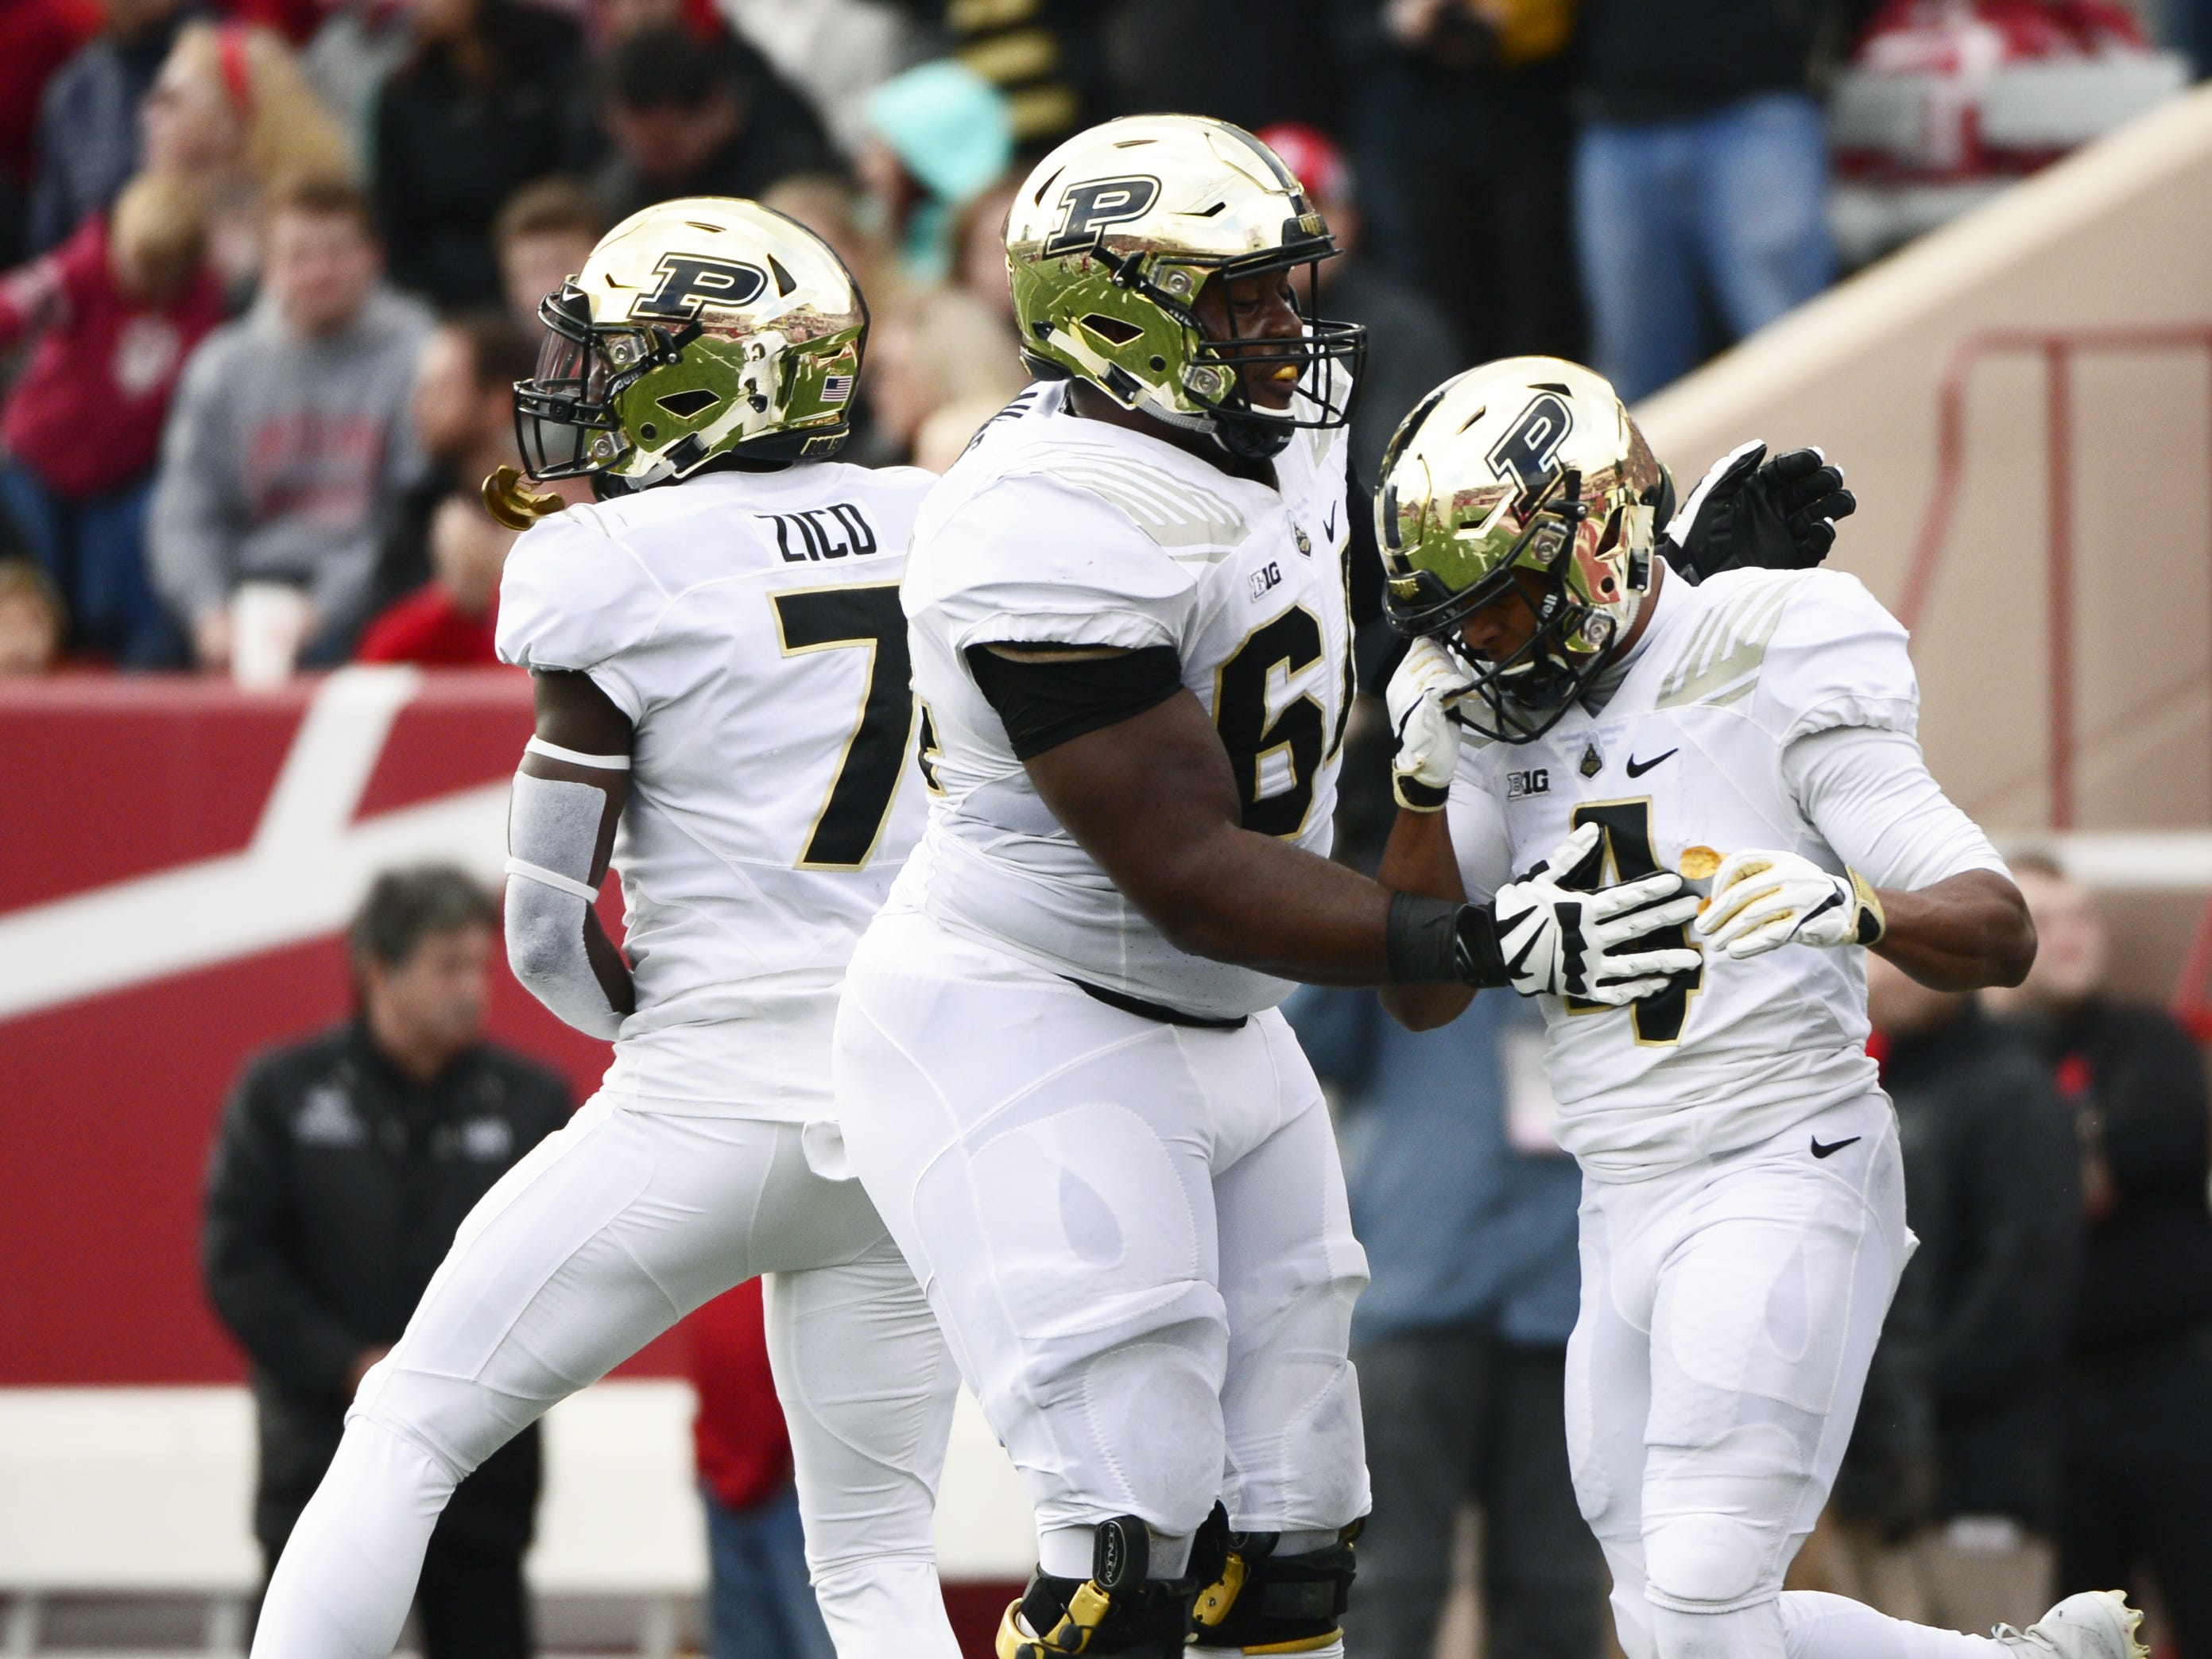 The Purdue Boilermakers celebrate after scoring a touchdown against Indiana during the game at Memorial Stadium in Bloomington Ind., on Saturday, Nov. 24, 2018.